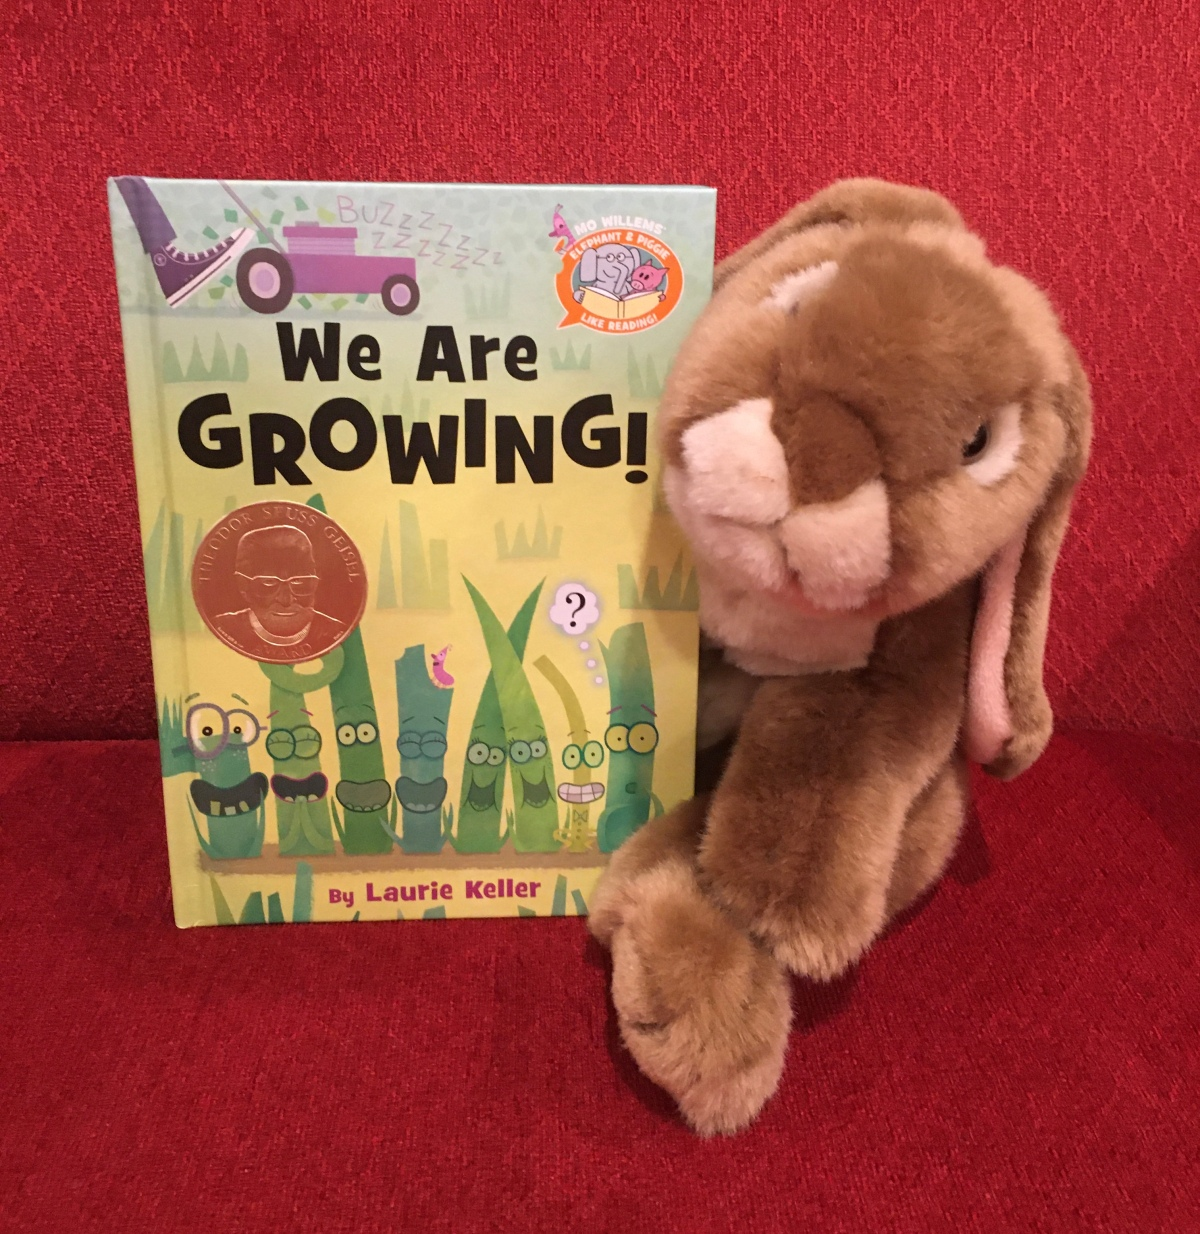 Caramel reviews We Are Growing! by Laurie Keller